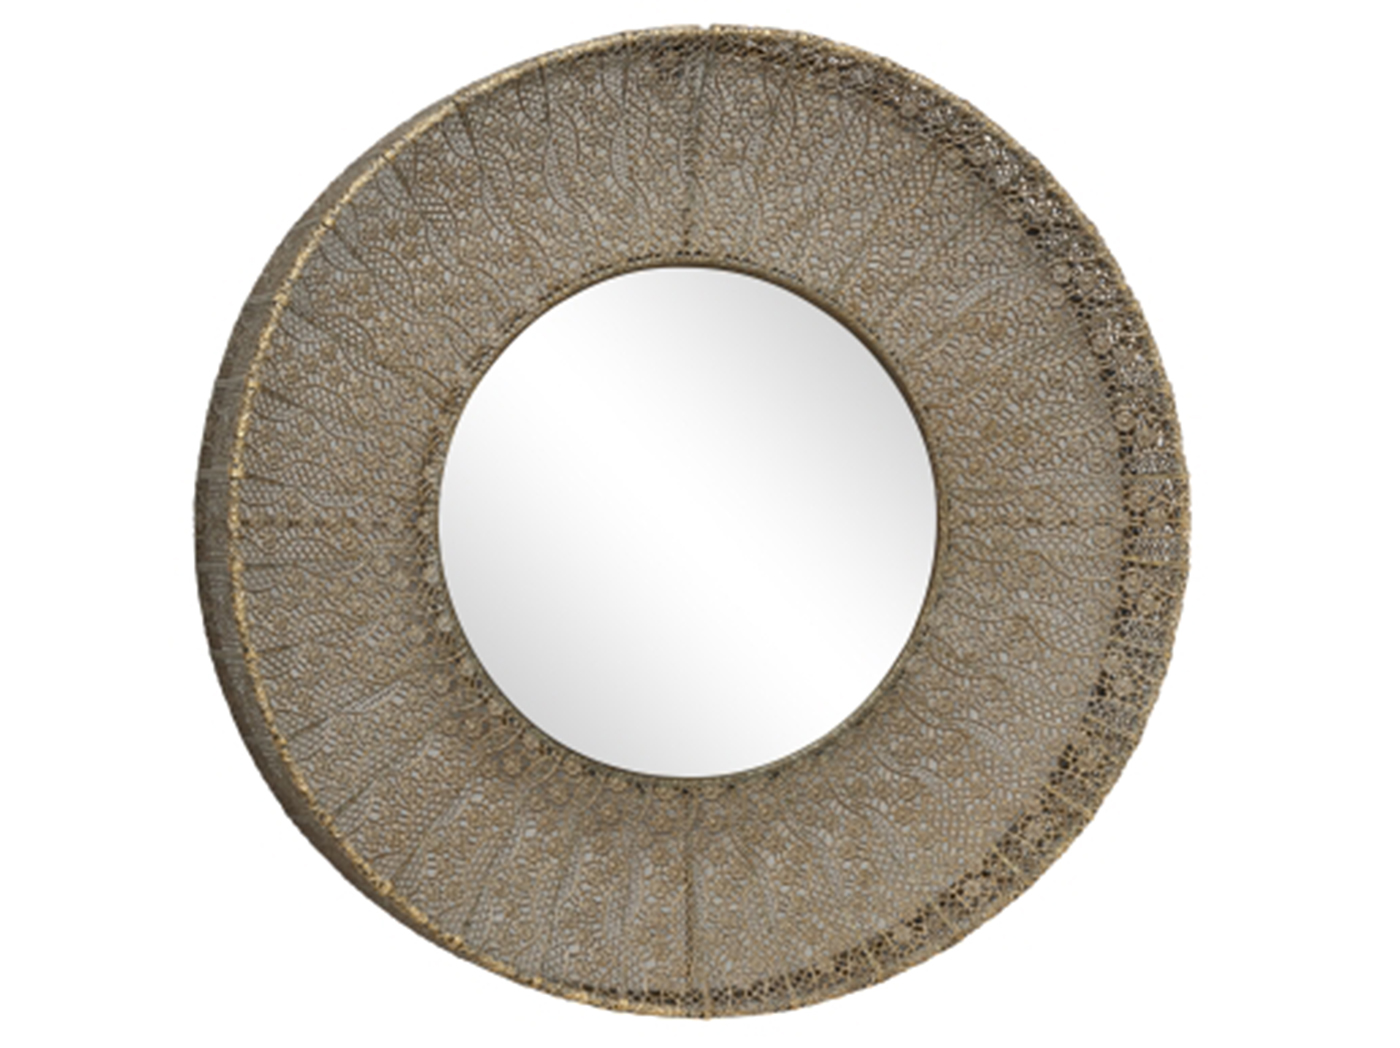 "Antique Gold Metal Wall Mirror 27"" Round"